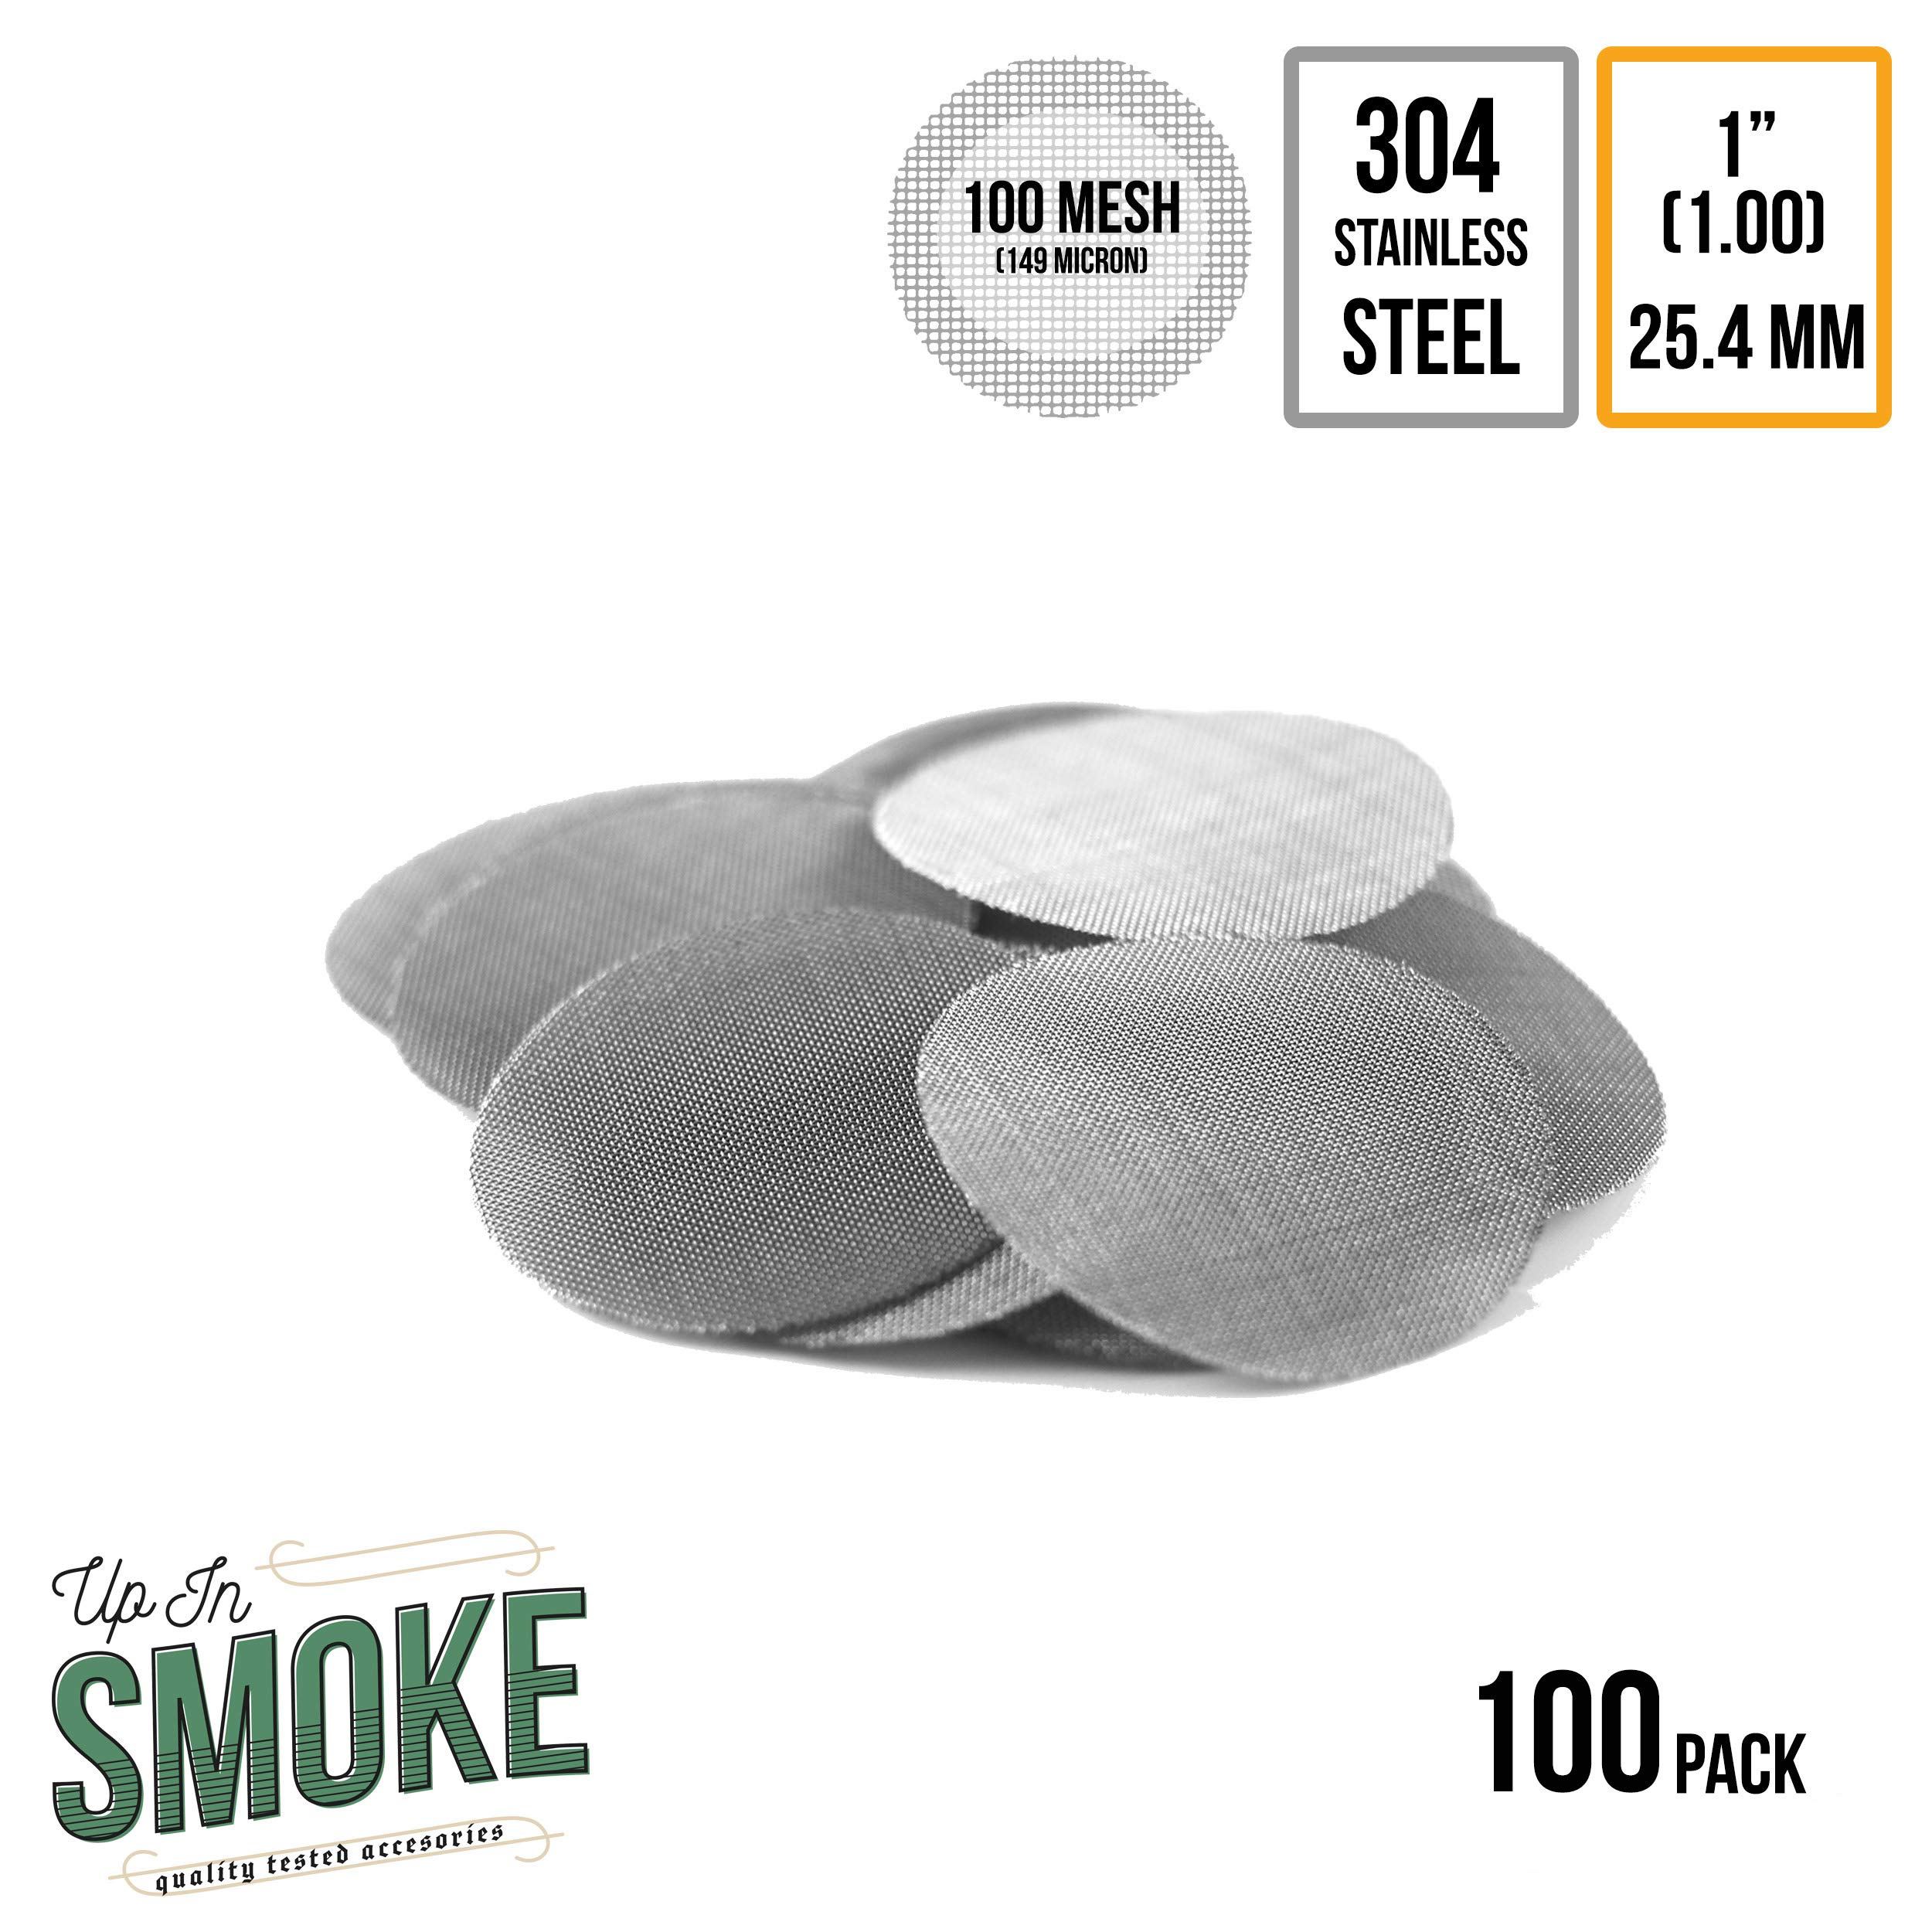 1'' Stainless Steel Pipe Screens | Made in The USA Pipe Screen Filters (100 Pack) by Up in Smoke Pipe Screens